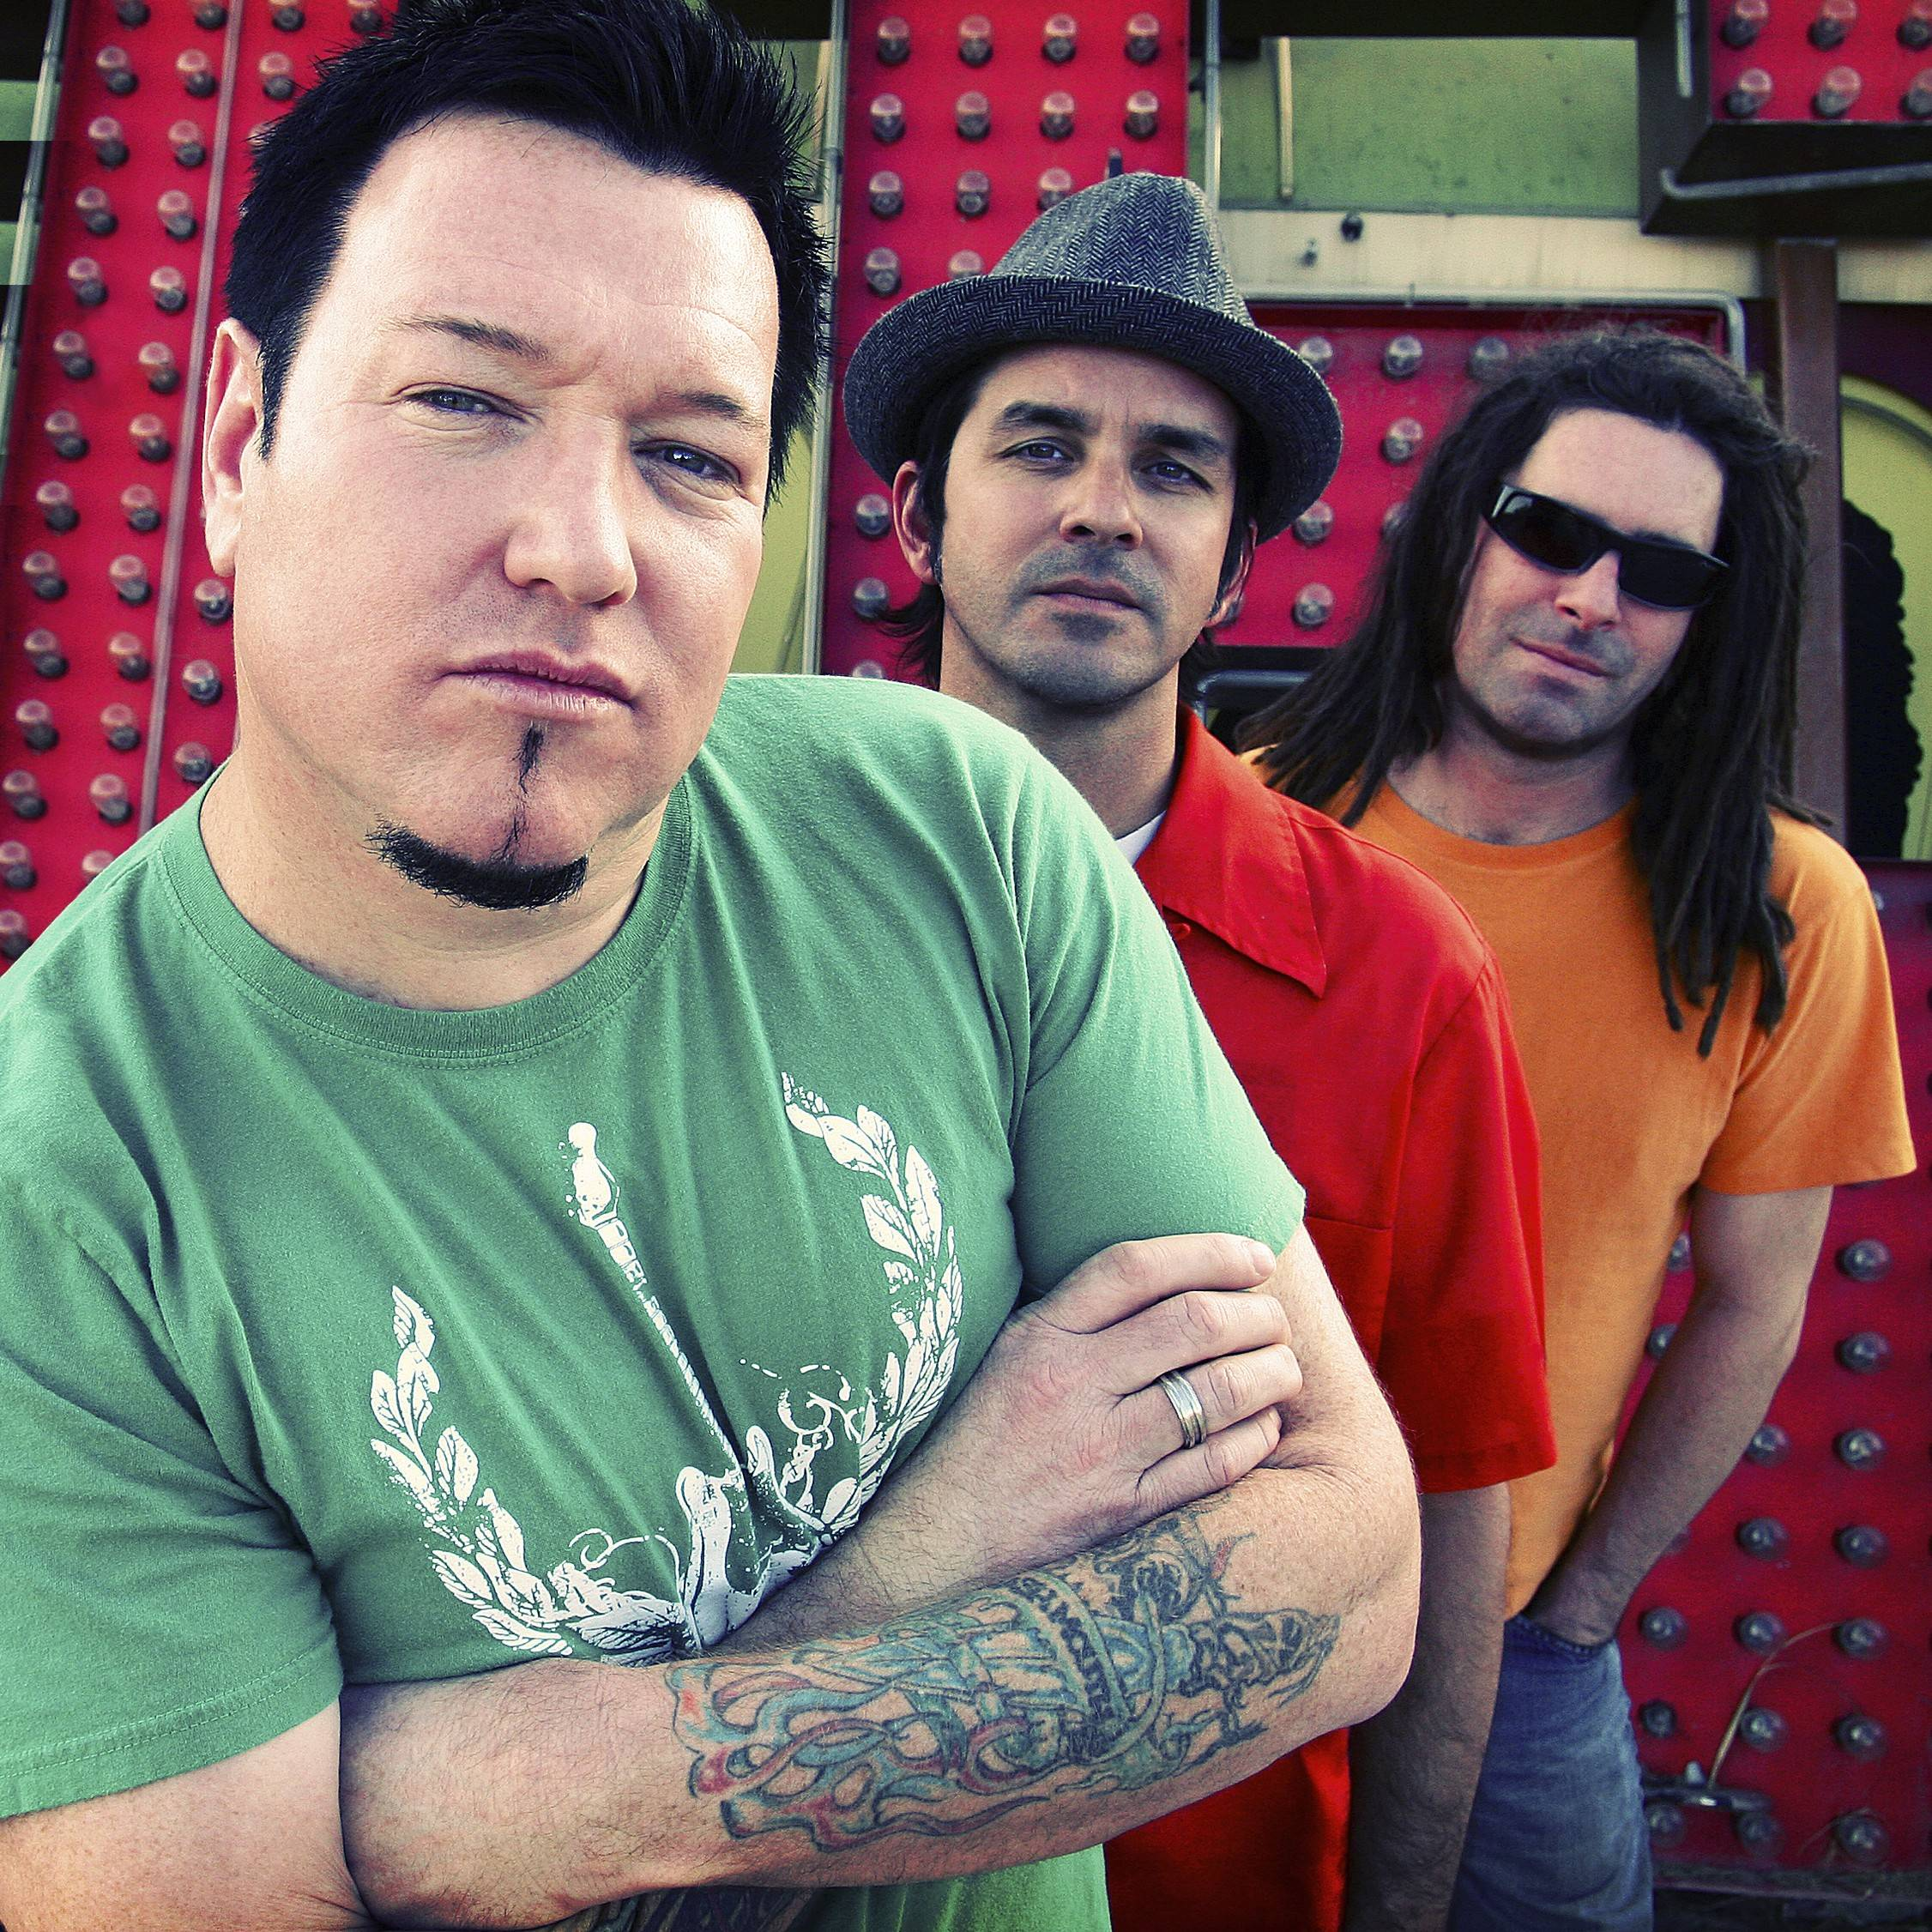 Smash Mouth headlines Saturday night at the Northwest Fourth-Fest at the Sears Centre Arena in Hoffman Estates.